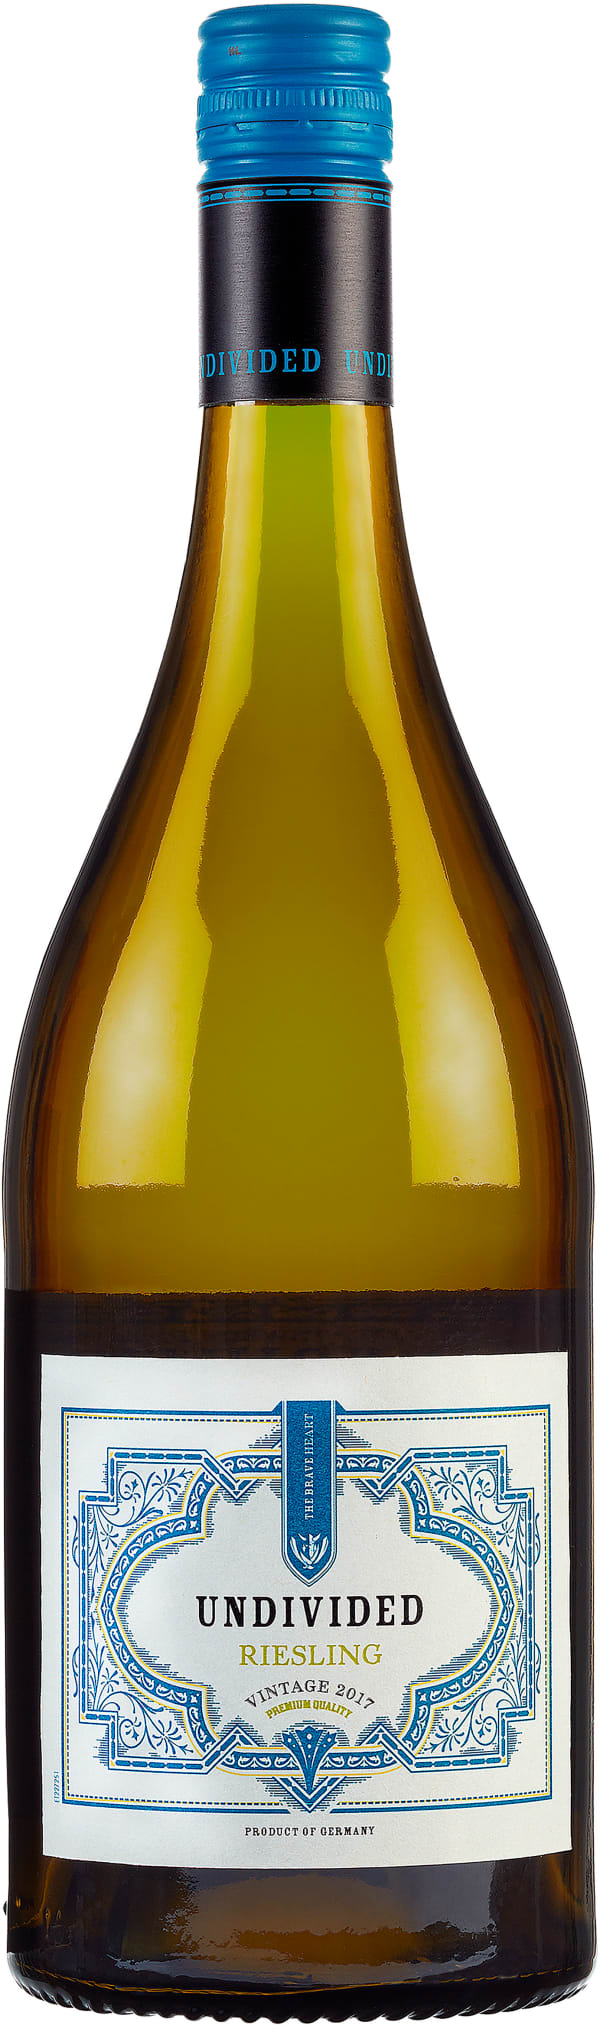 Undivided Riesling 2017